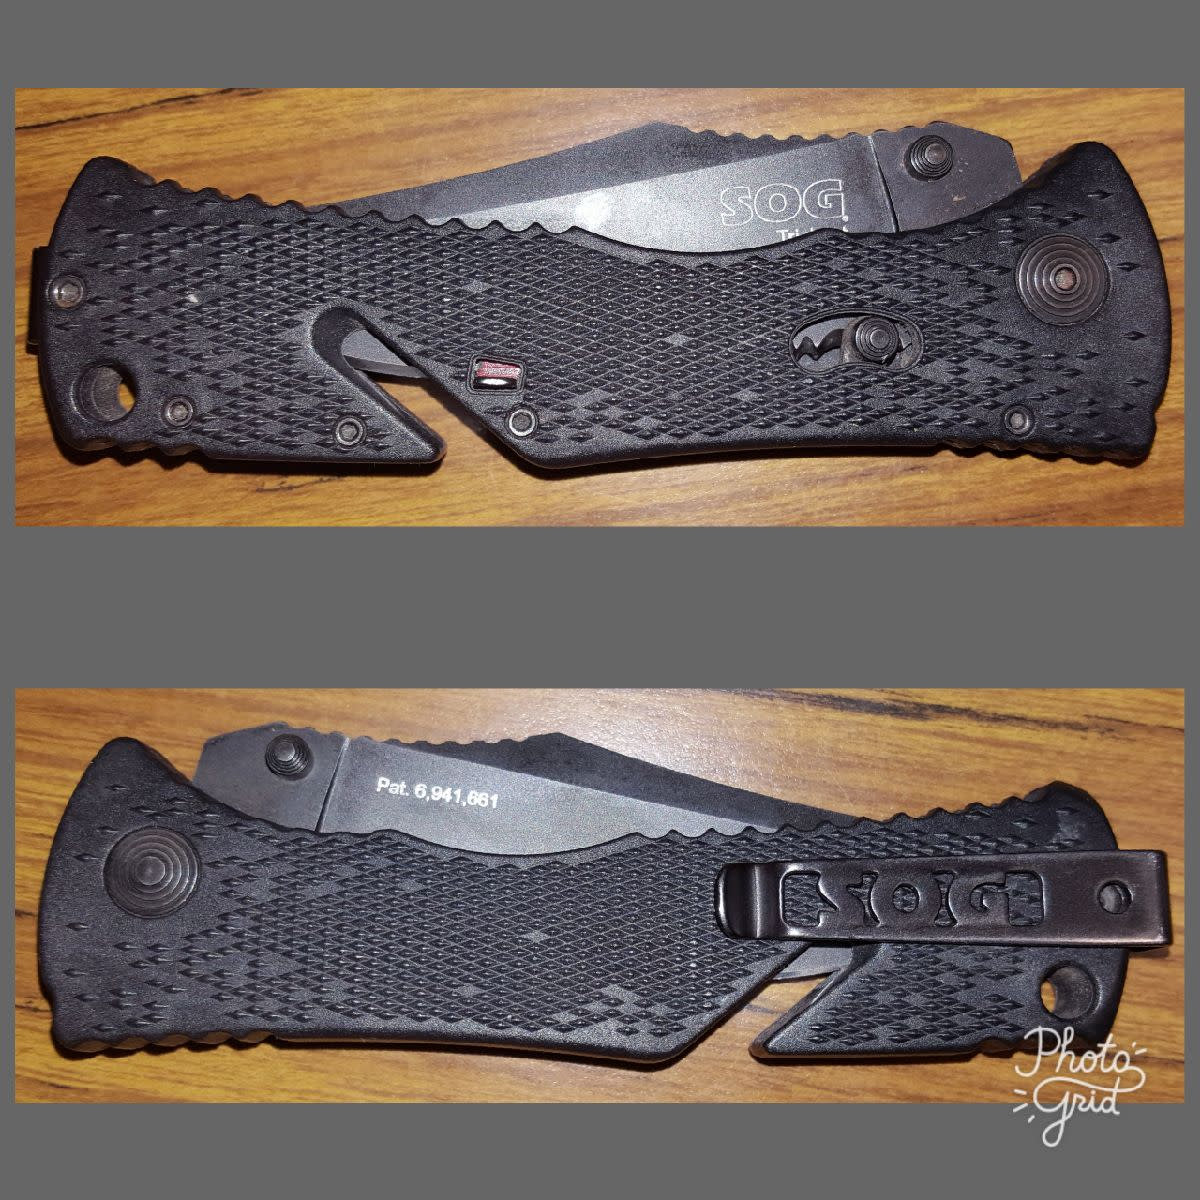 sog-trident-a-budget-friendly-tactical-knife